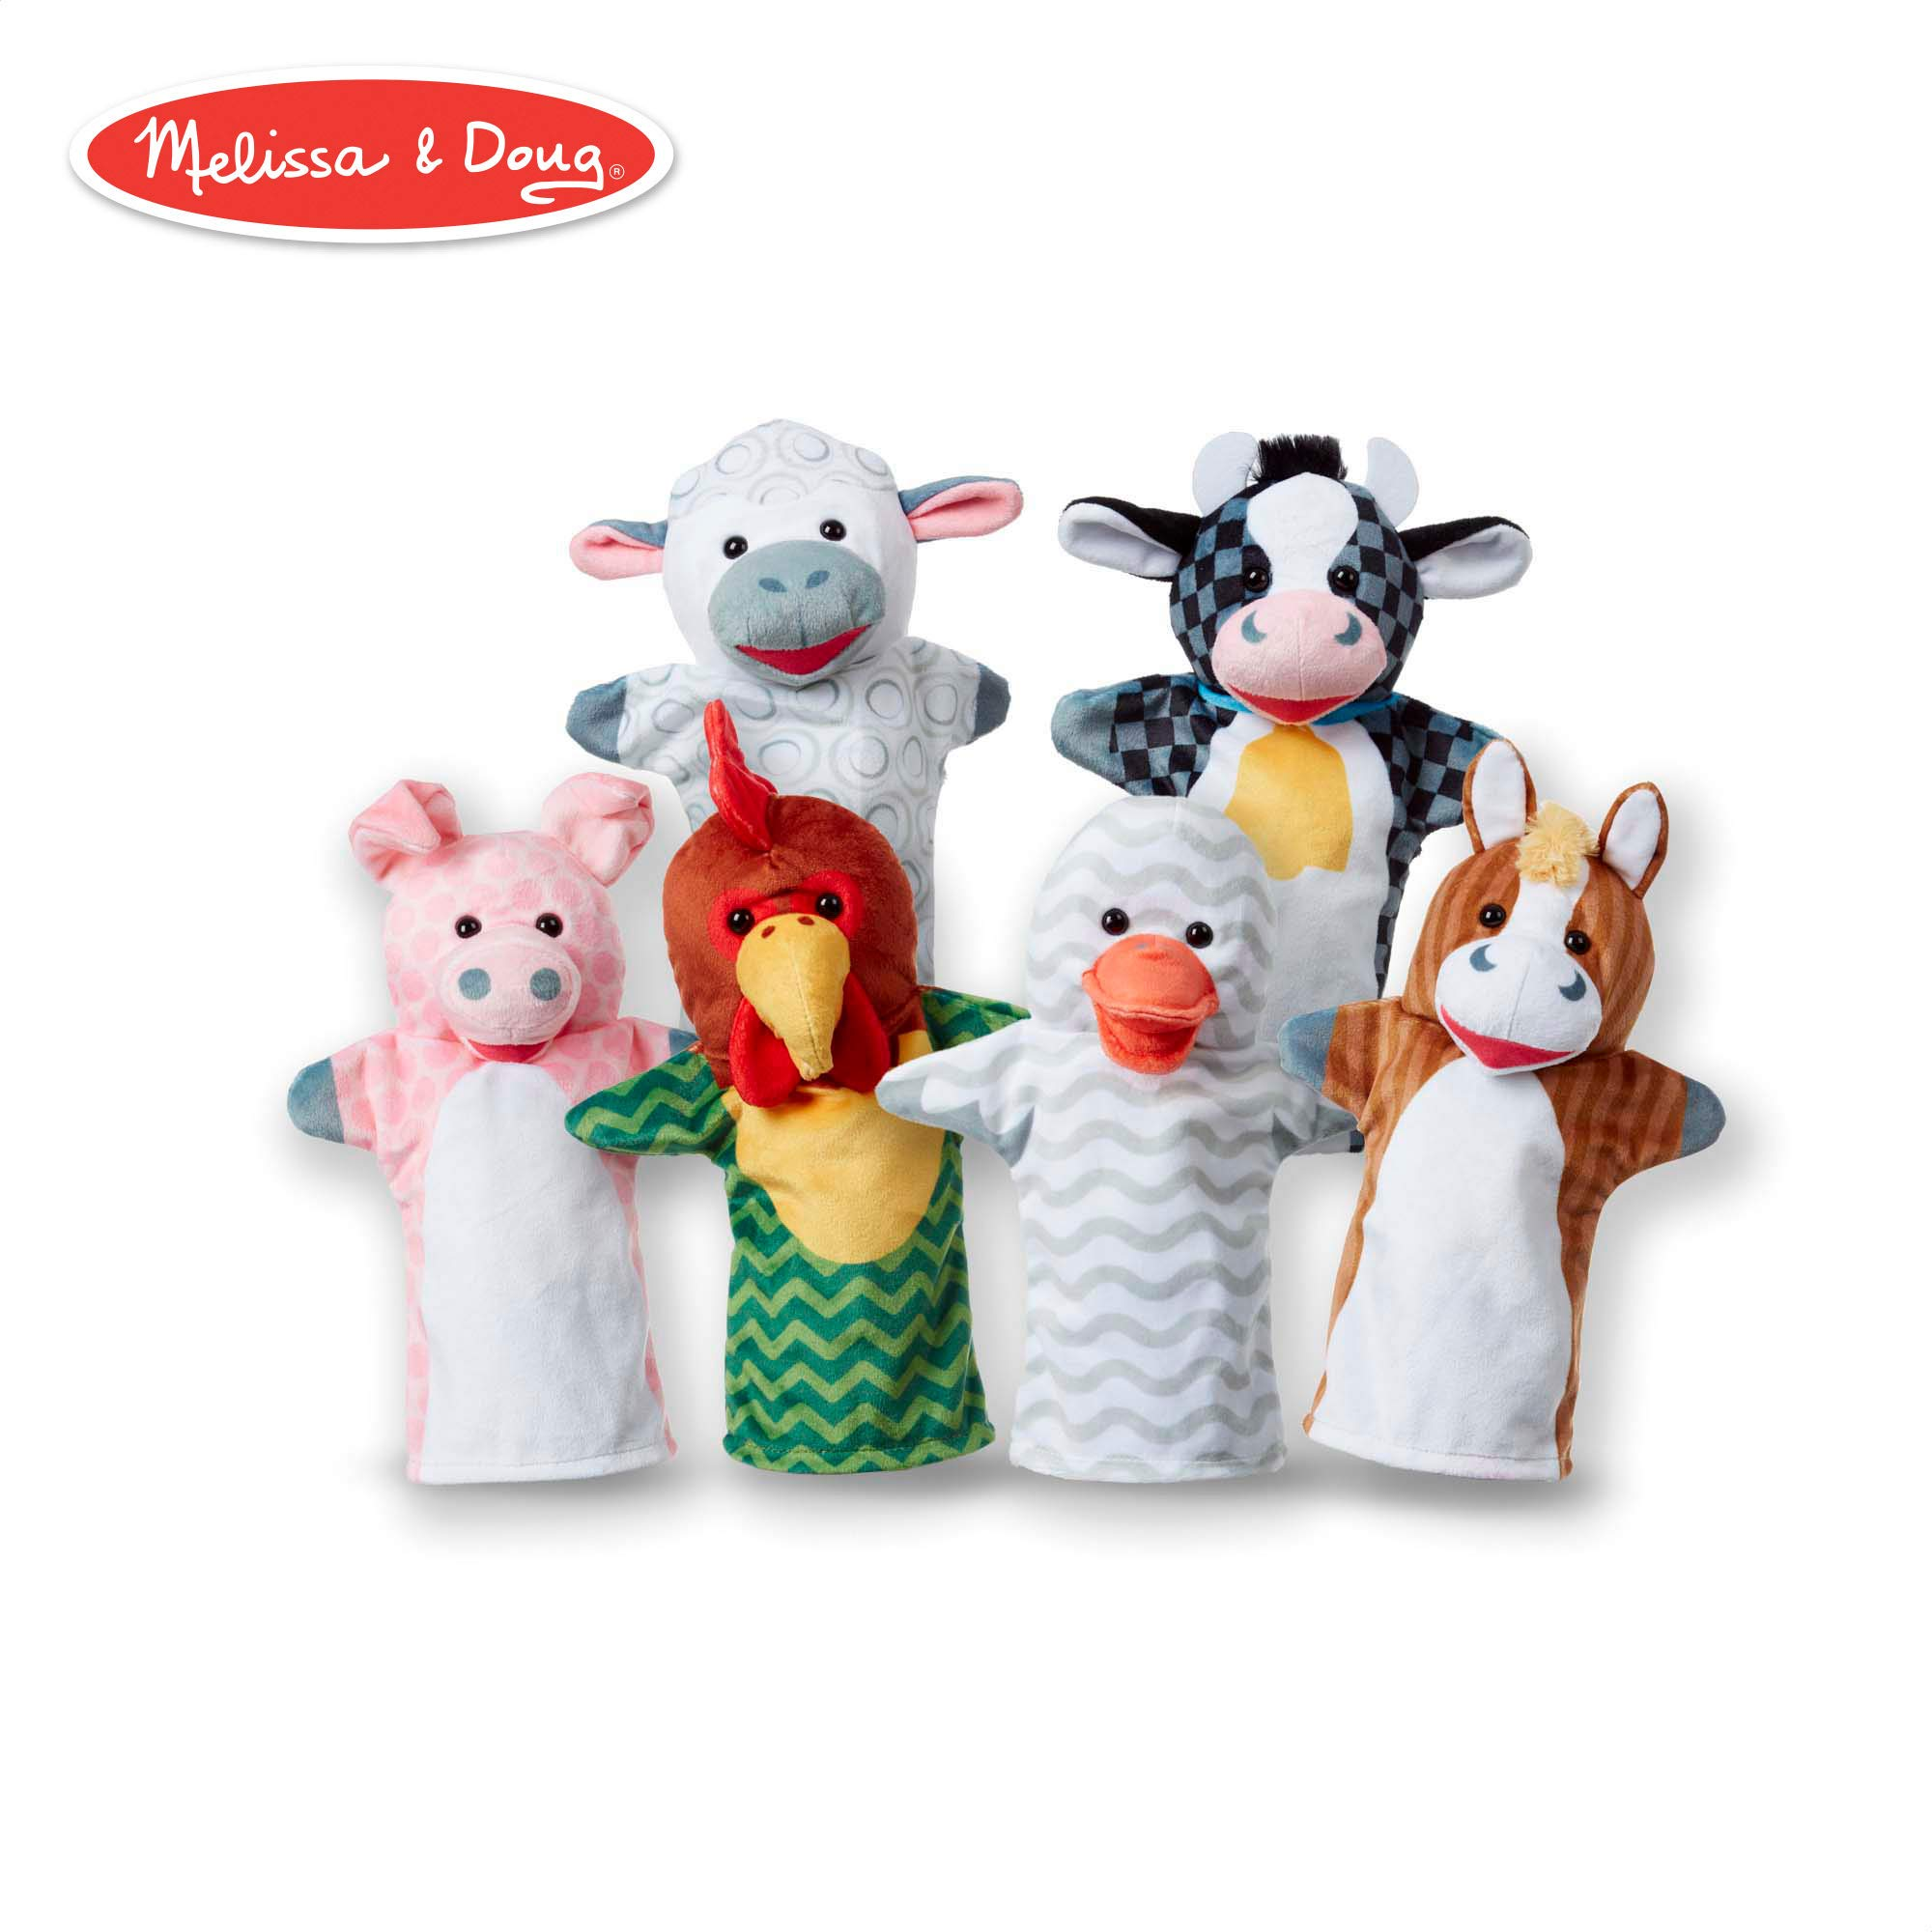 Melissa & Doug Barn Buddies Hand Puppets, Puppet Sets (Cow, Sheep, Horse, Duck, Chicken, Pig, Soft Plush Material, Set of 6)